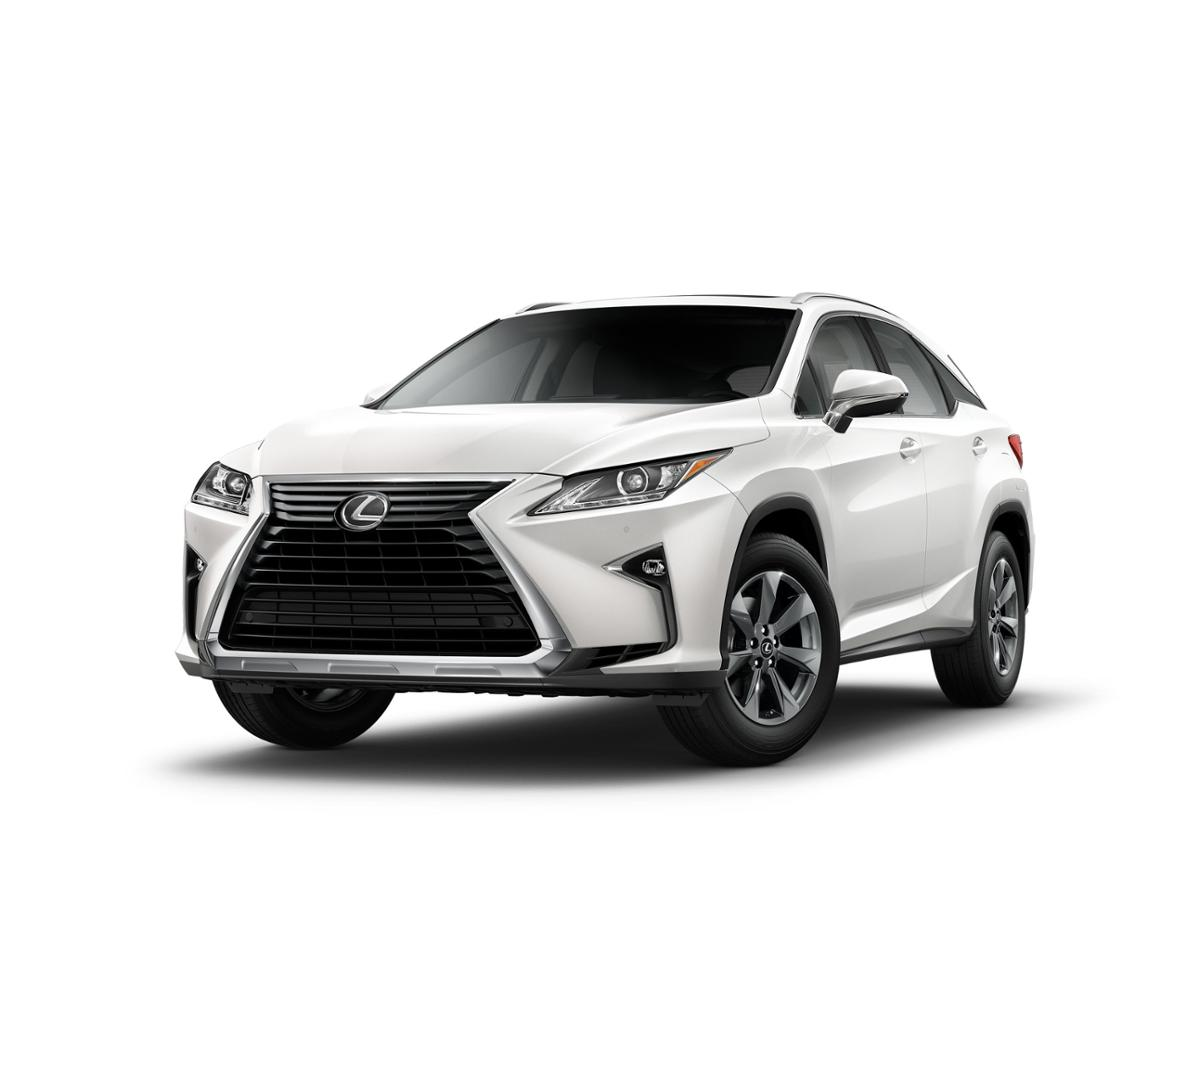 2018 Lexus RX 350 Vehicle Photo in Lincoln, NE 68516